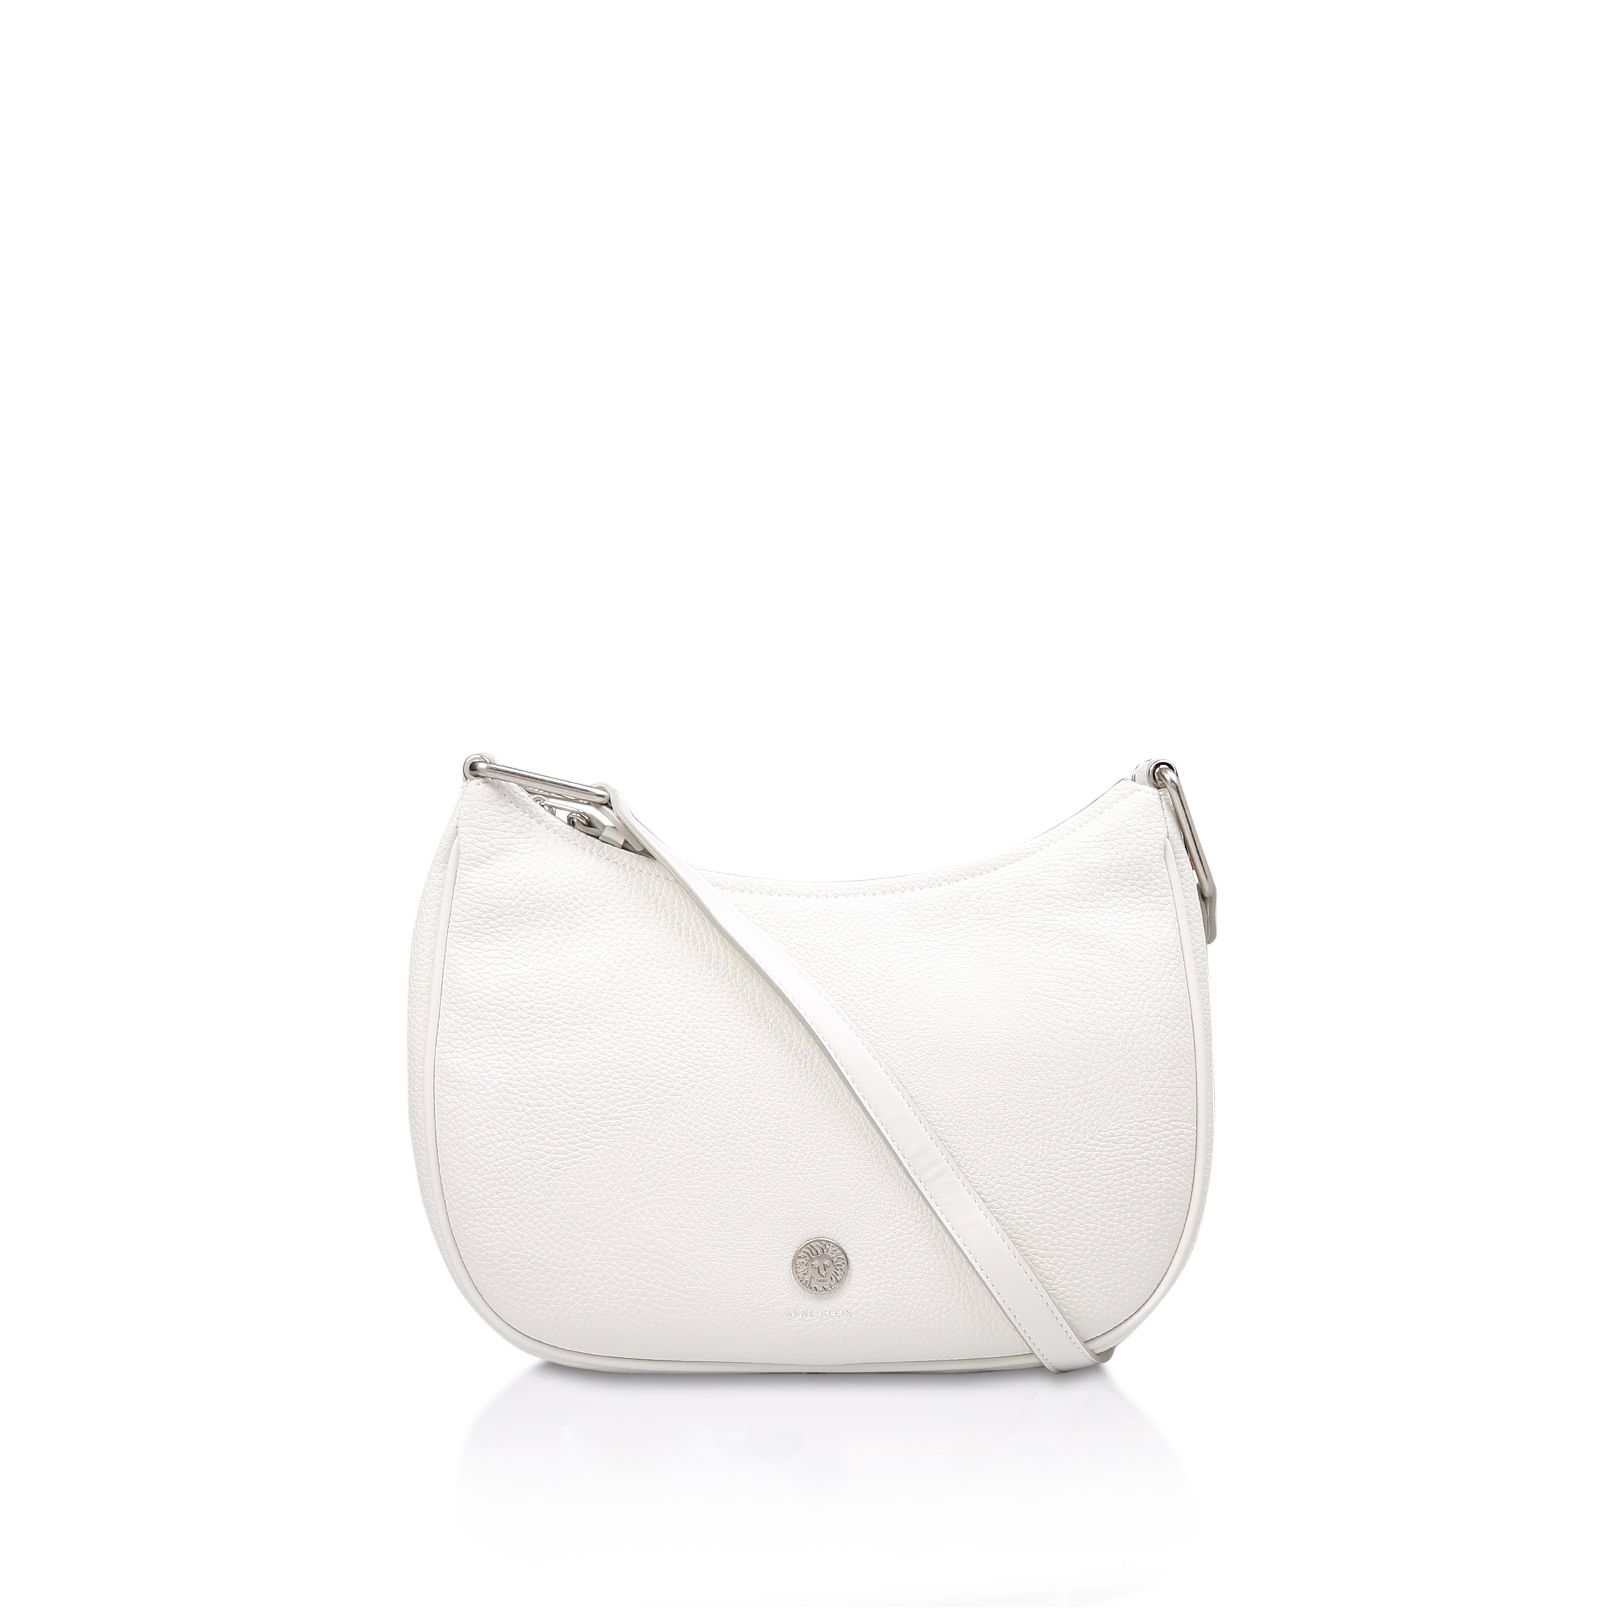 Anne Klein Hinge Crossbody Bag, White